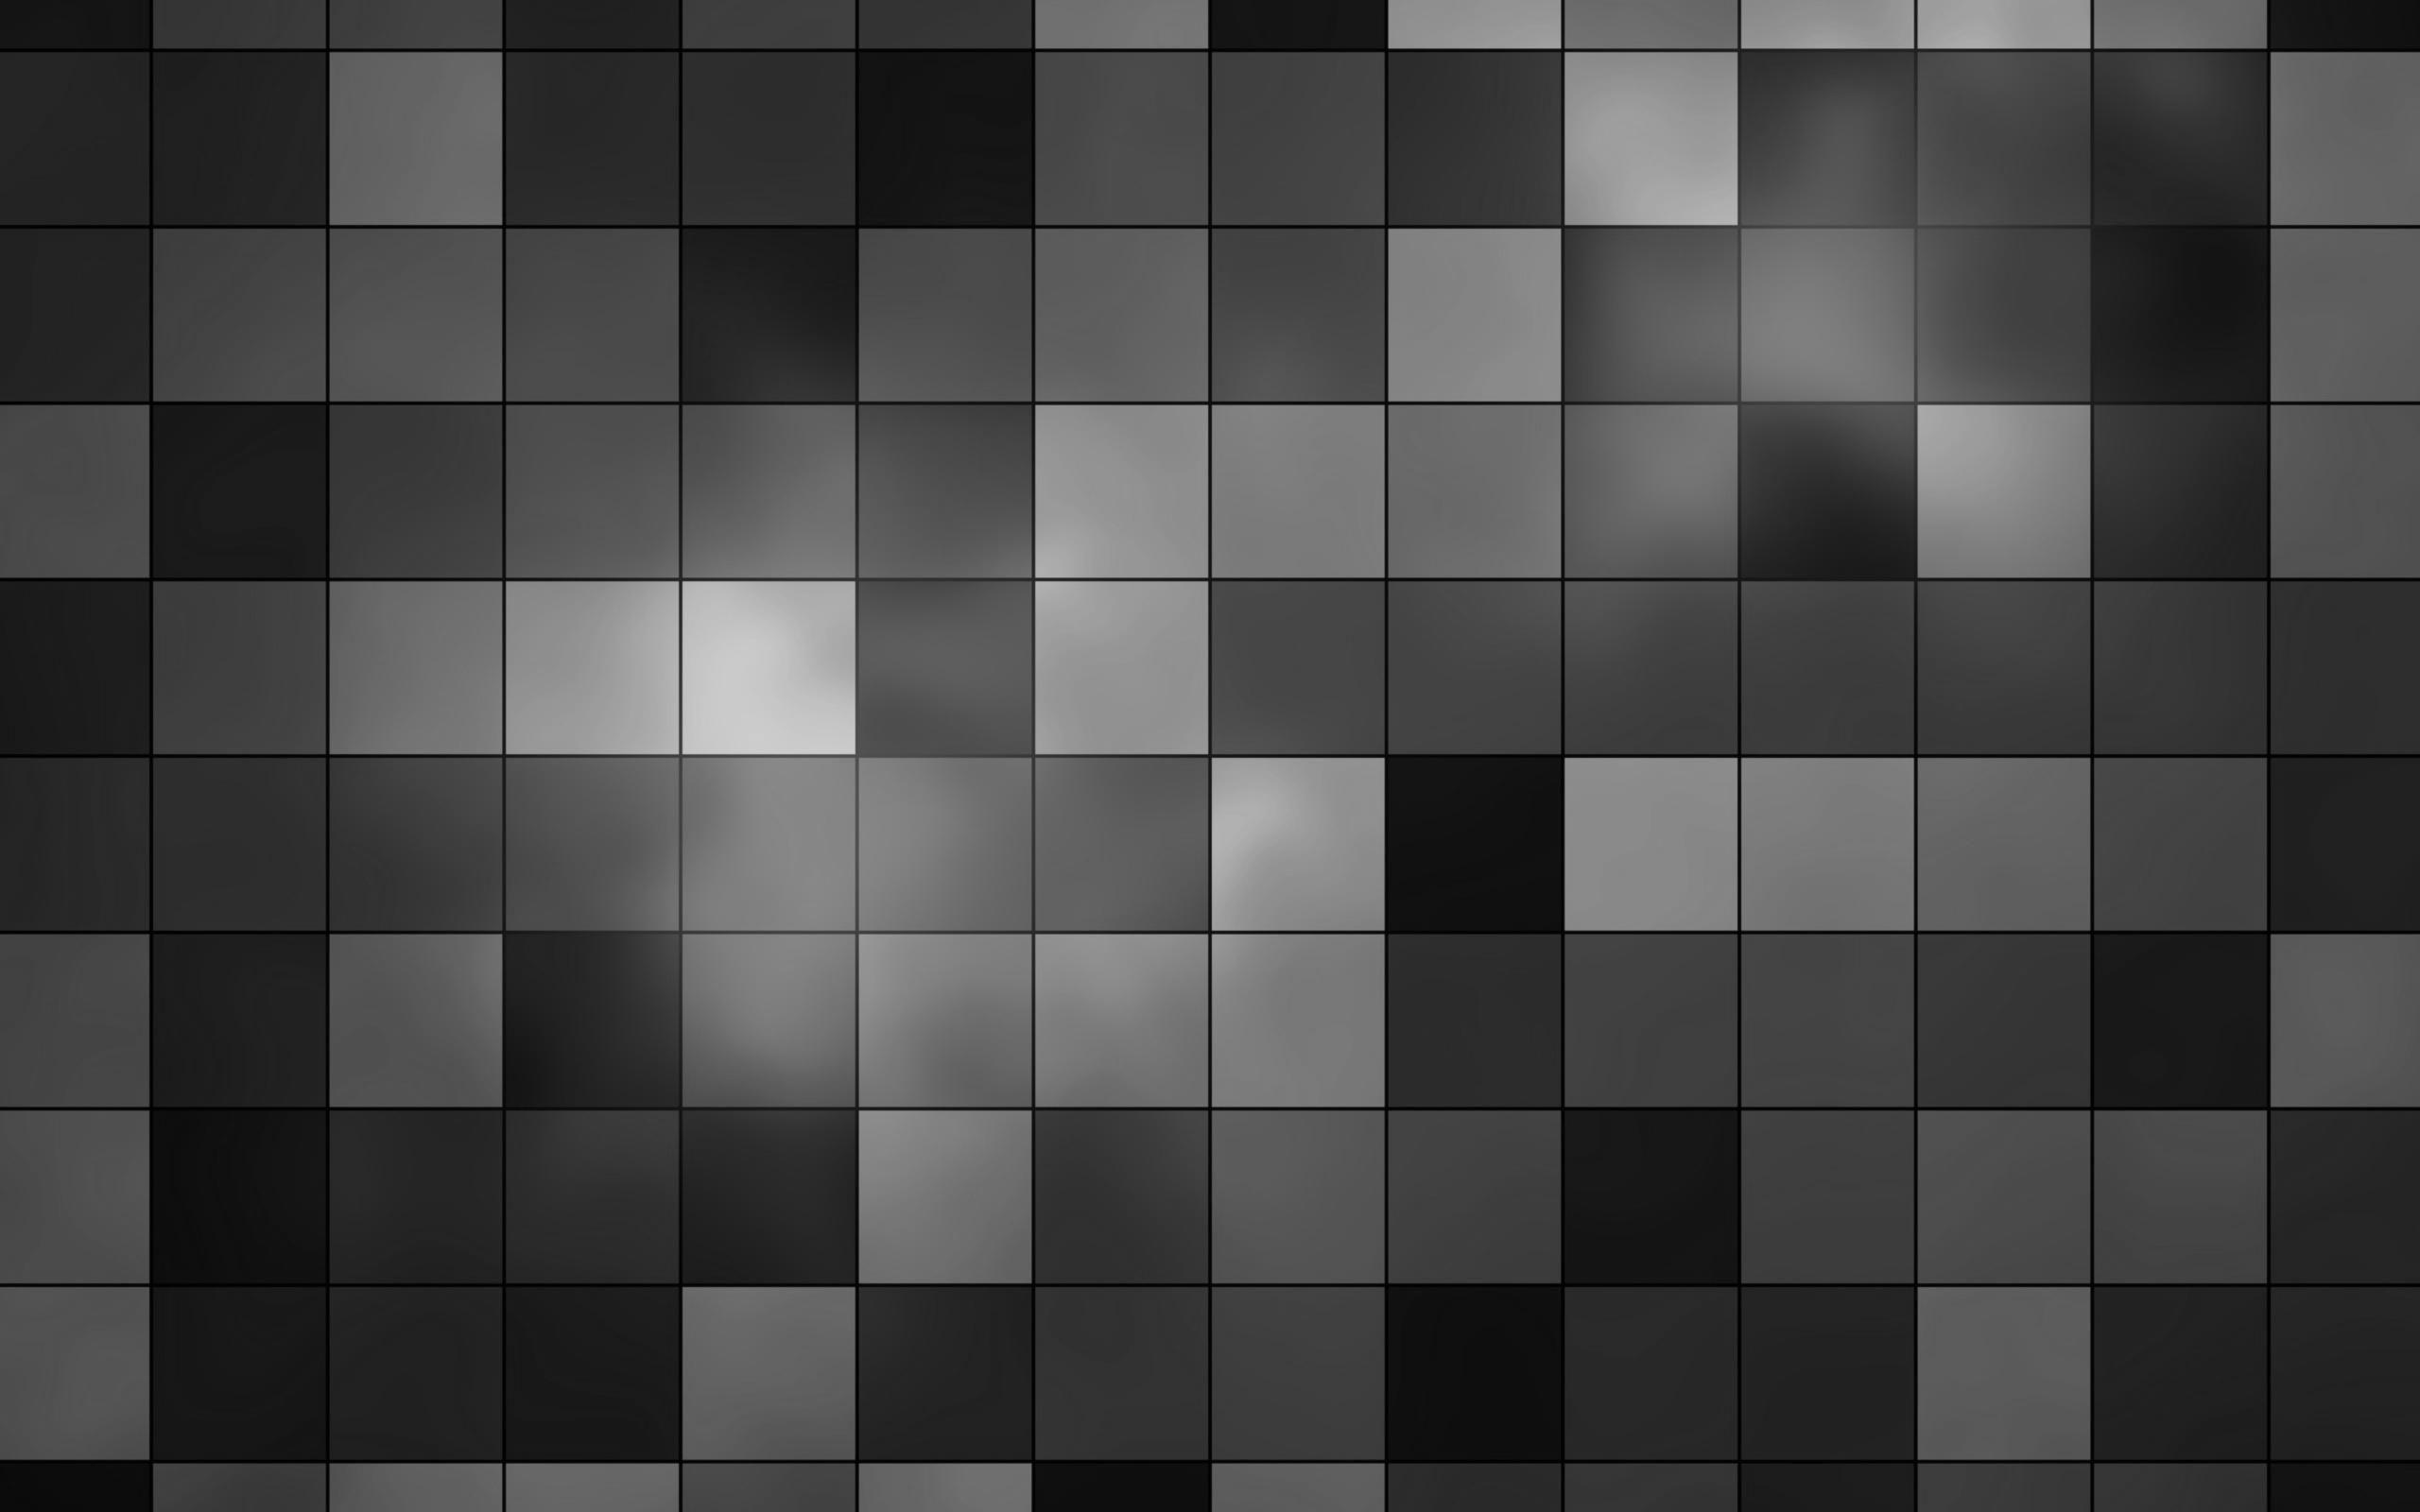 Black And White Tiles Wallpapers Fhdq